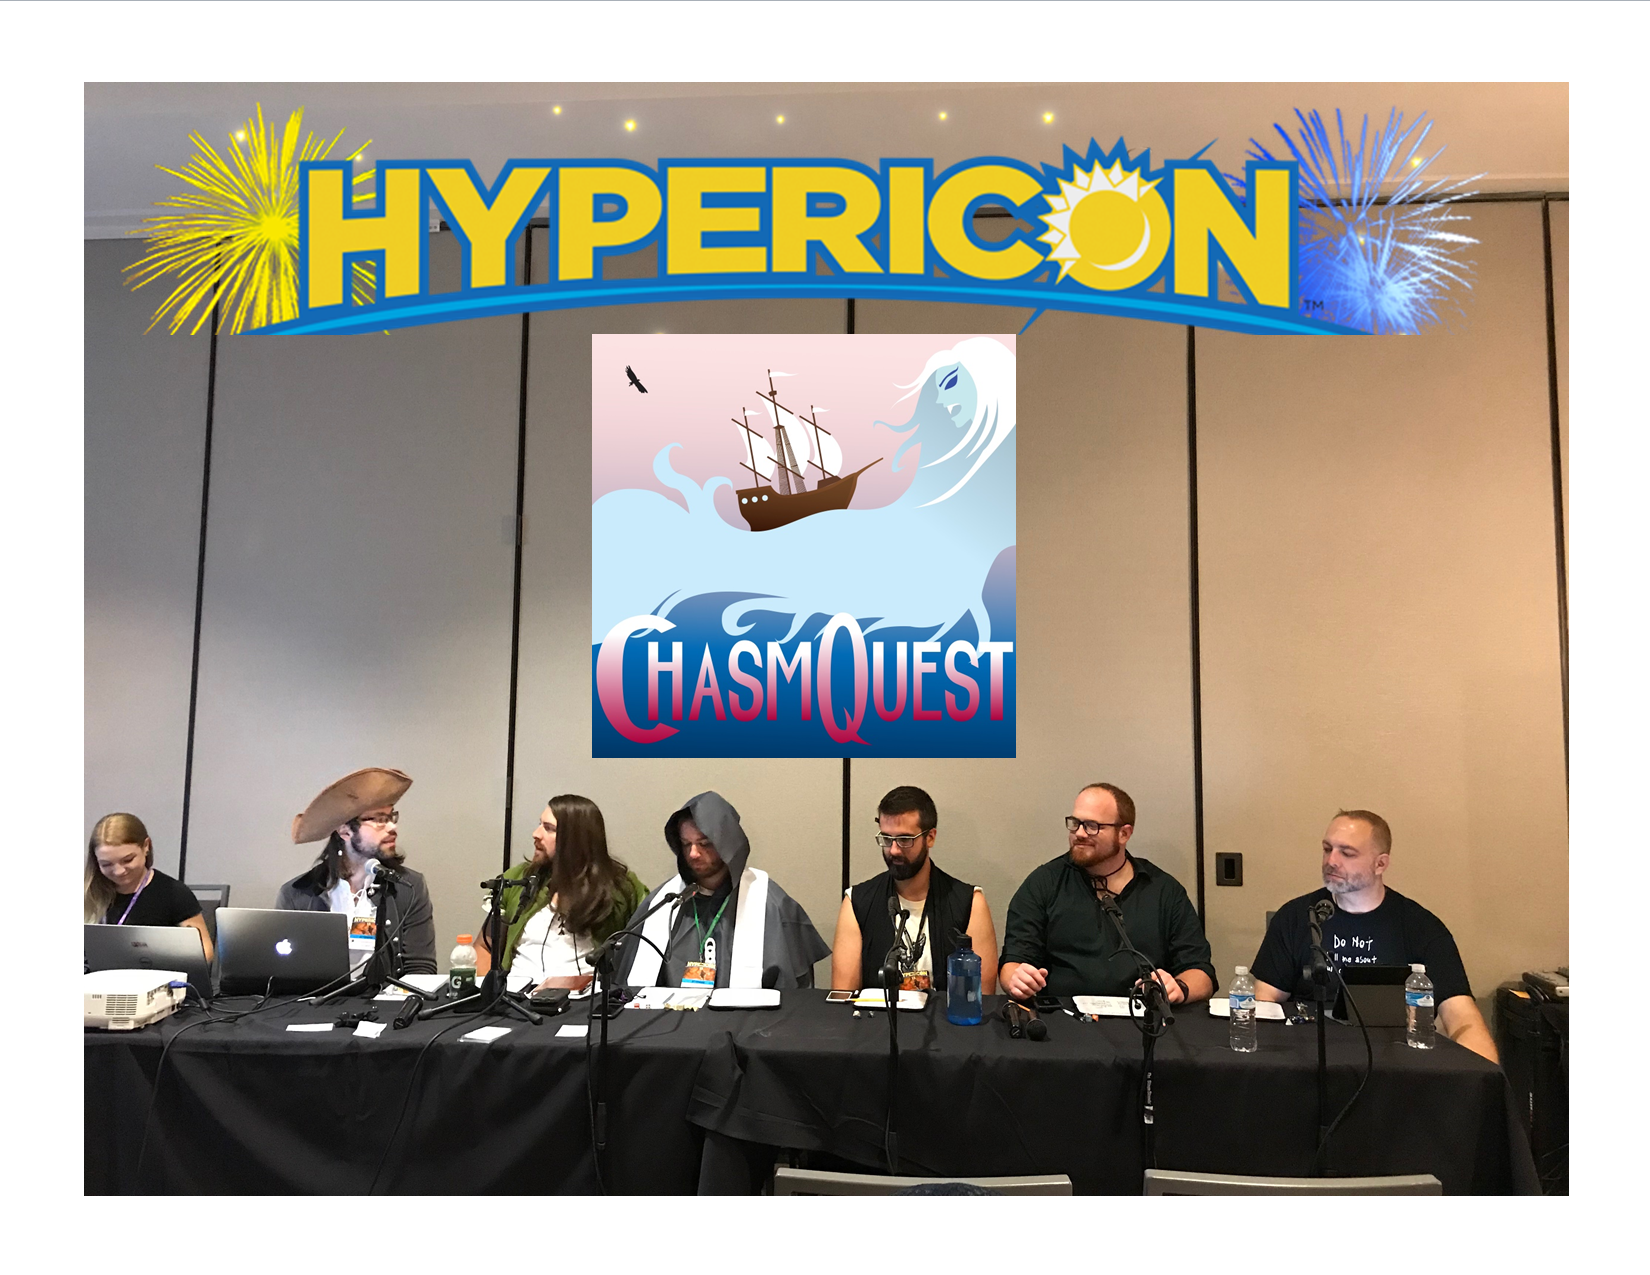 ChasmQuest at Hypericon.png